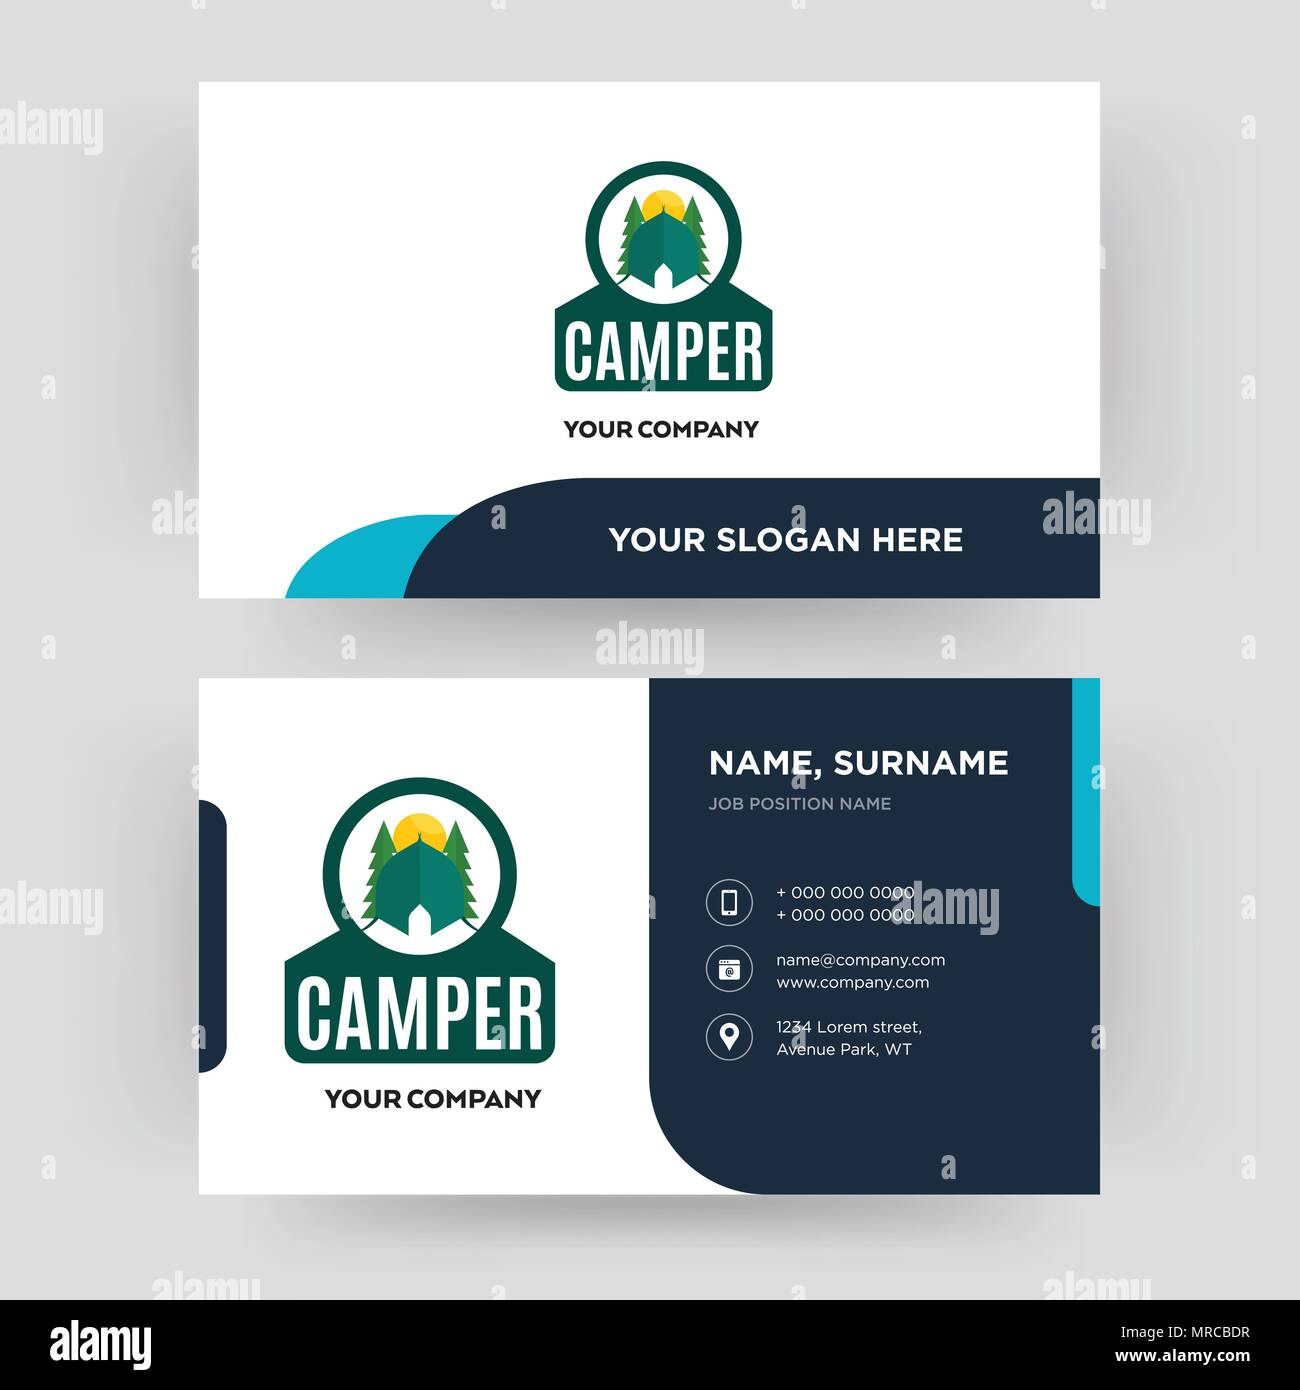 camper business card design template visiting for your company